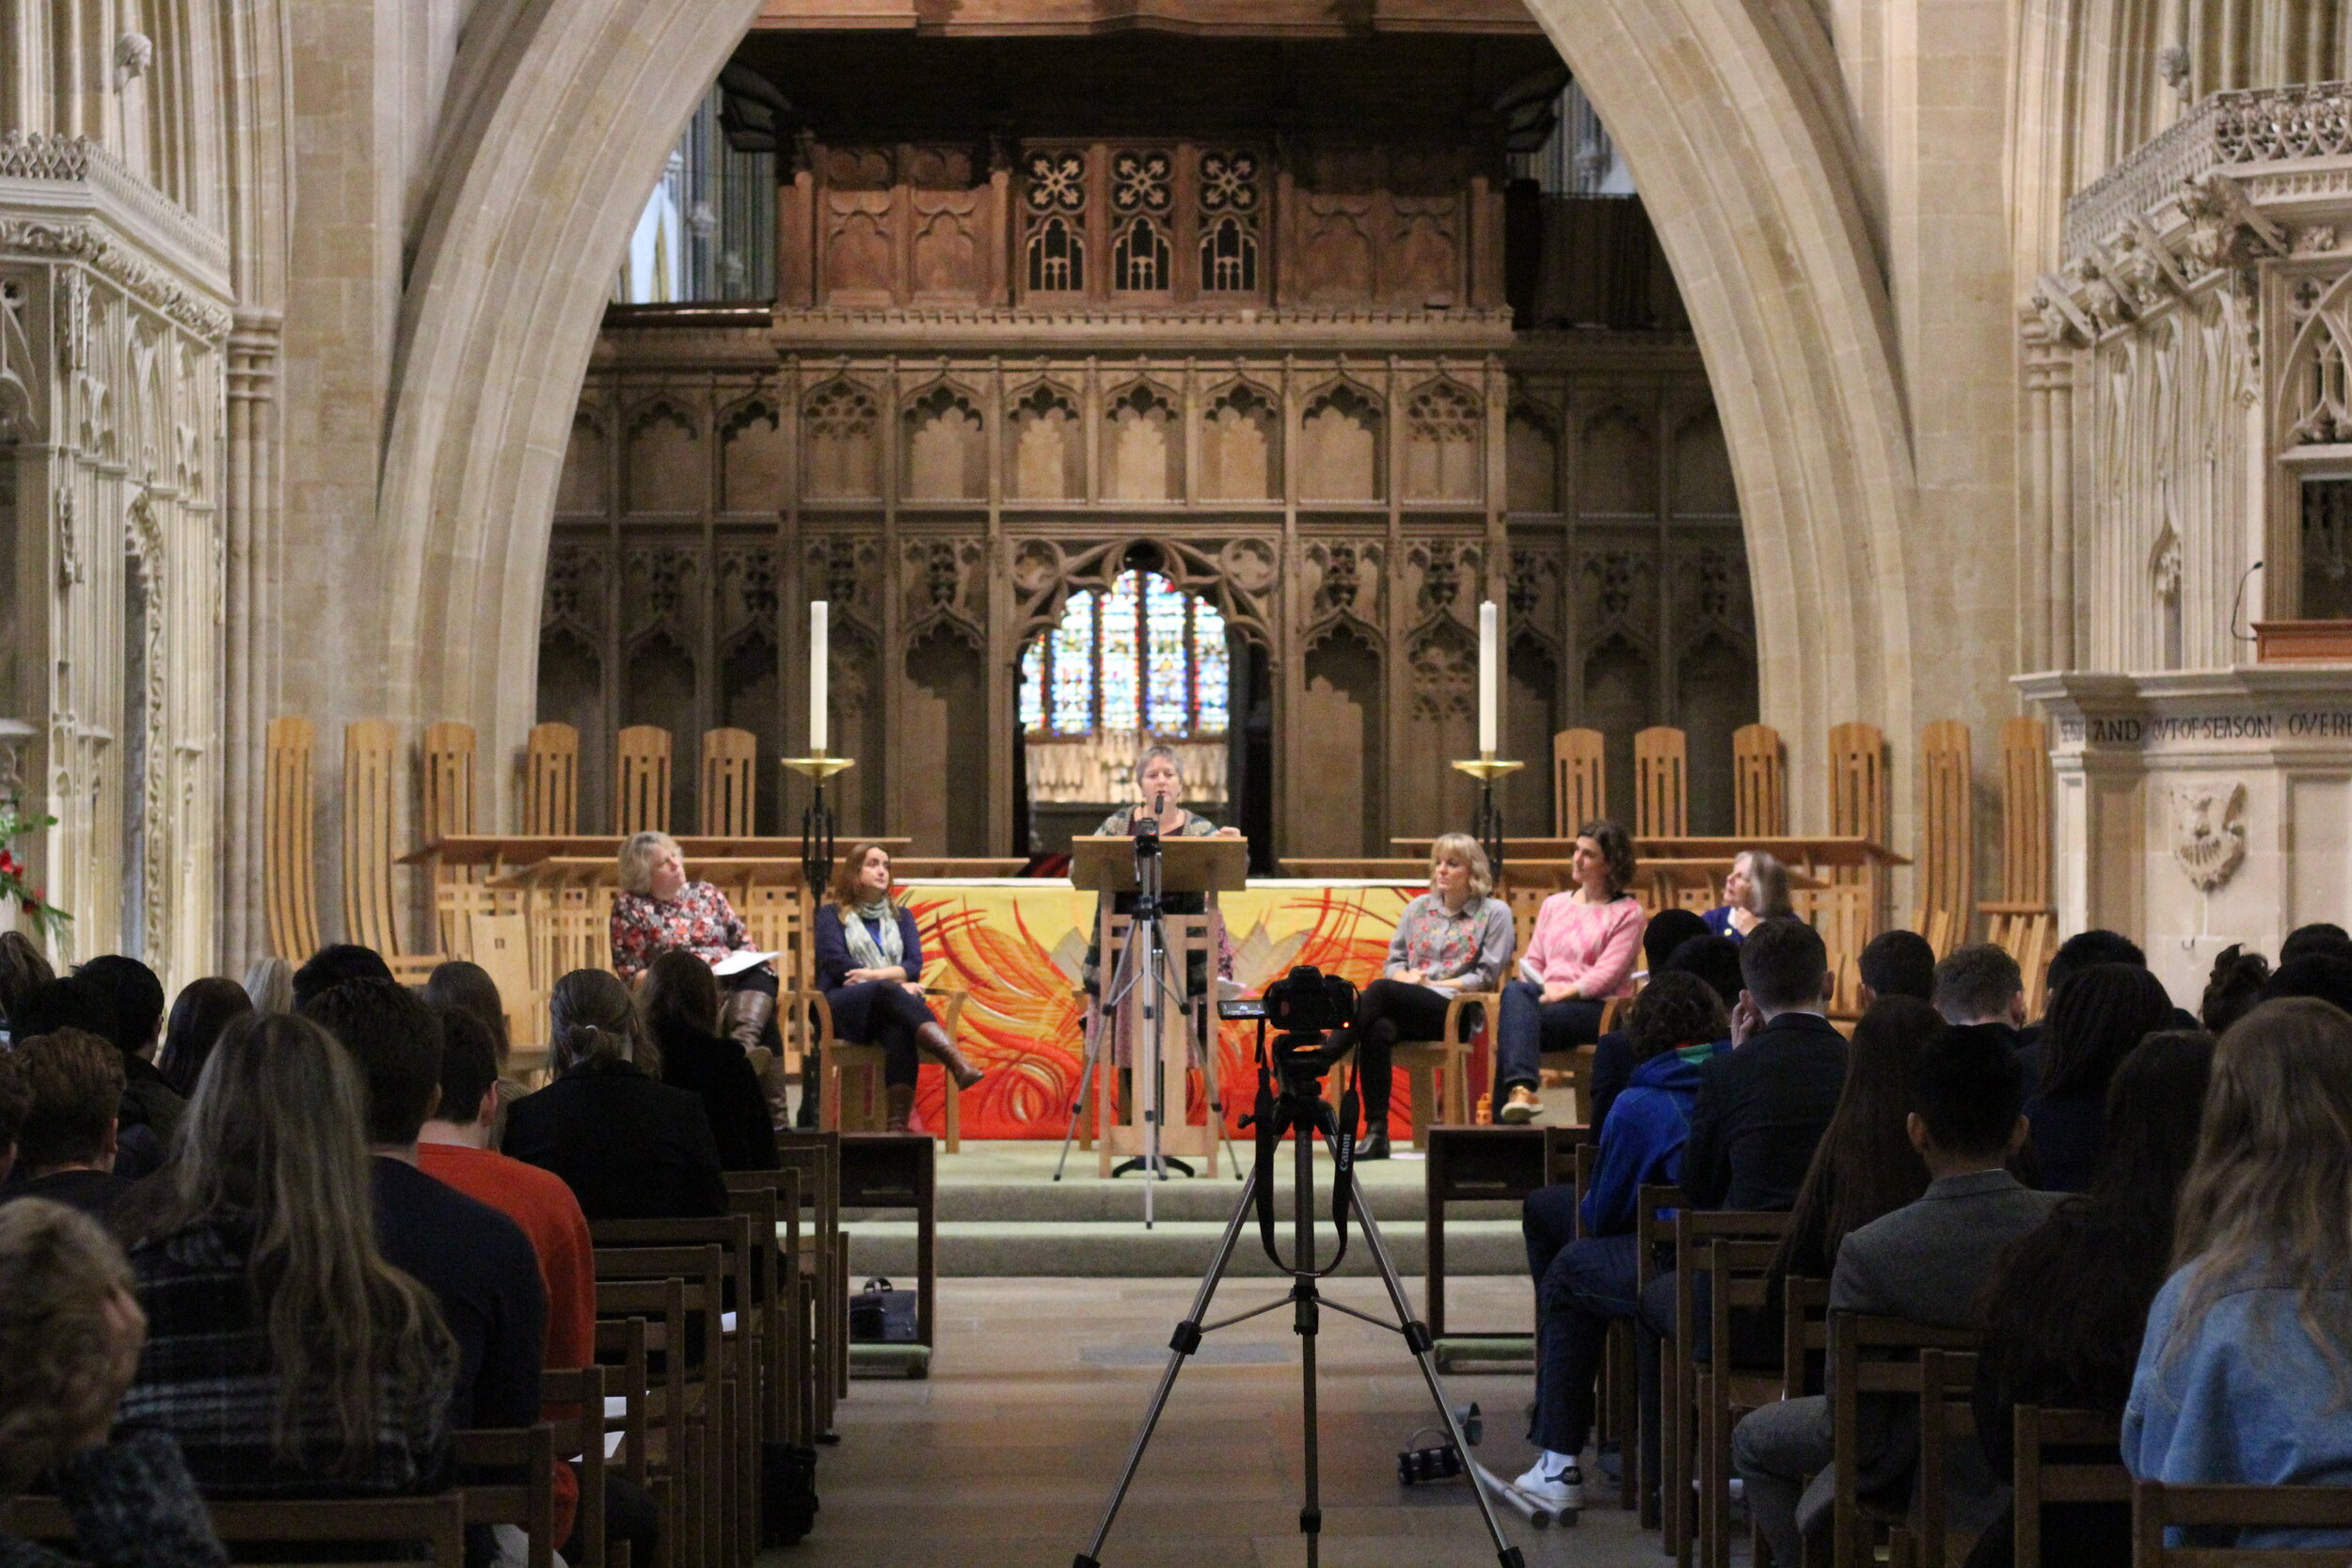 An event in Wells Cathedral with sixth form pupils from local schools.